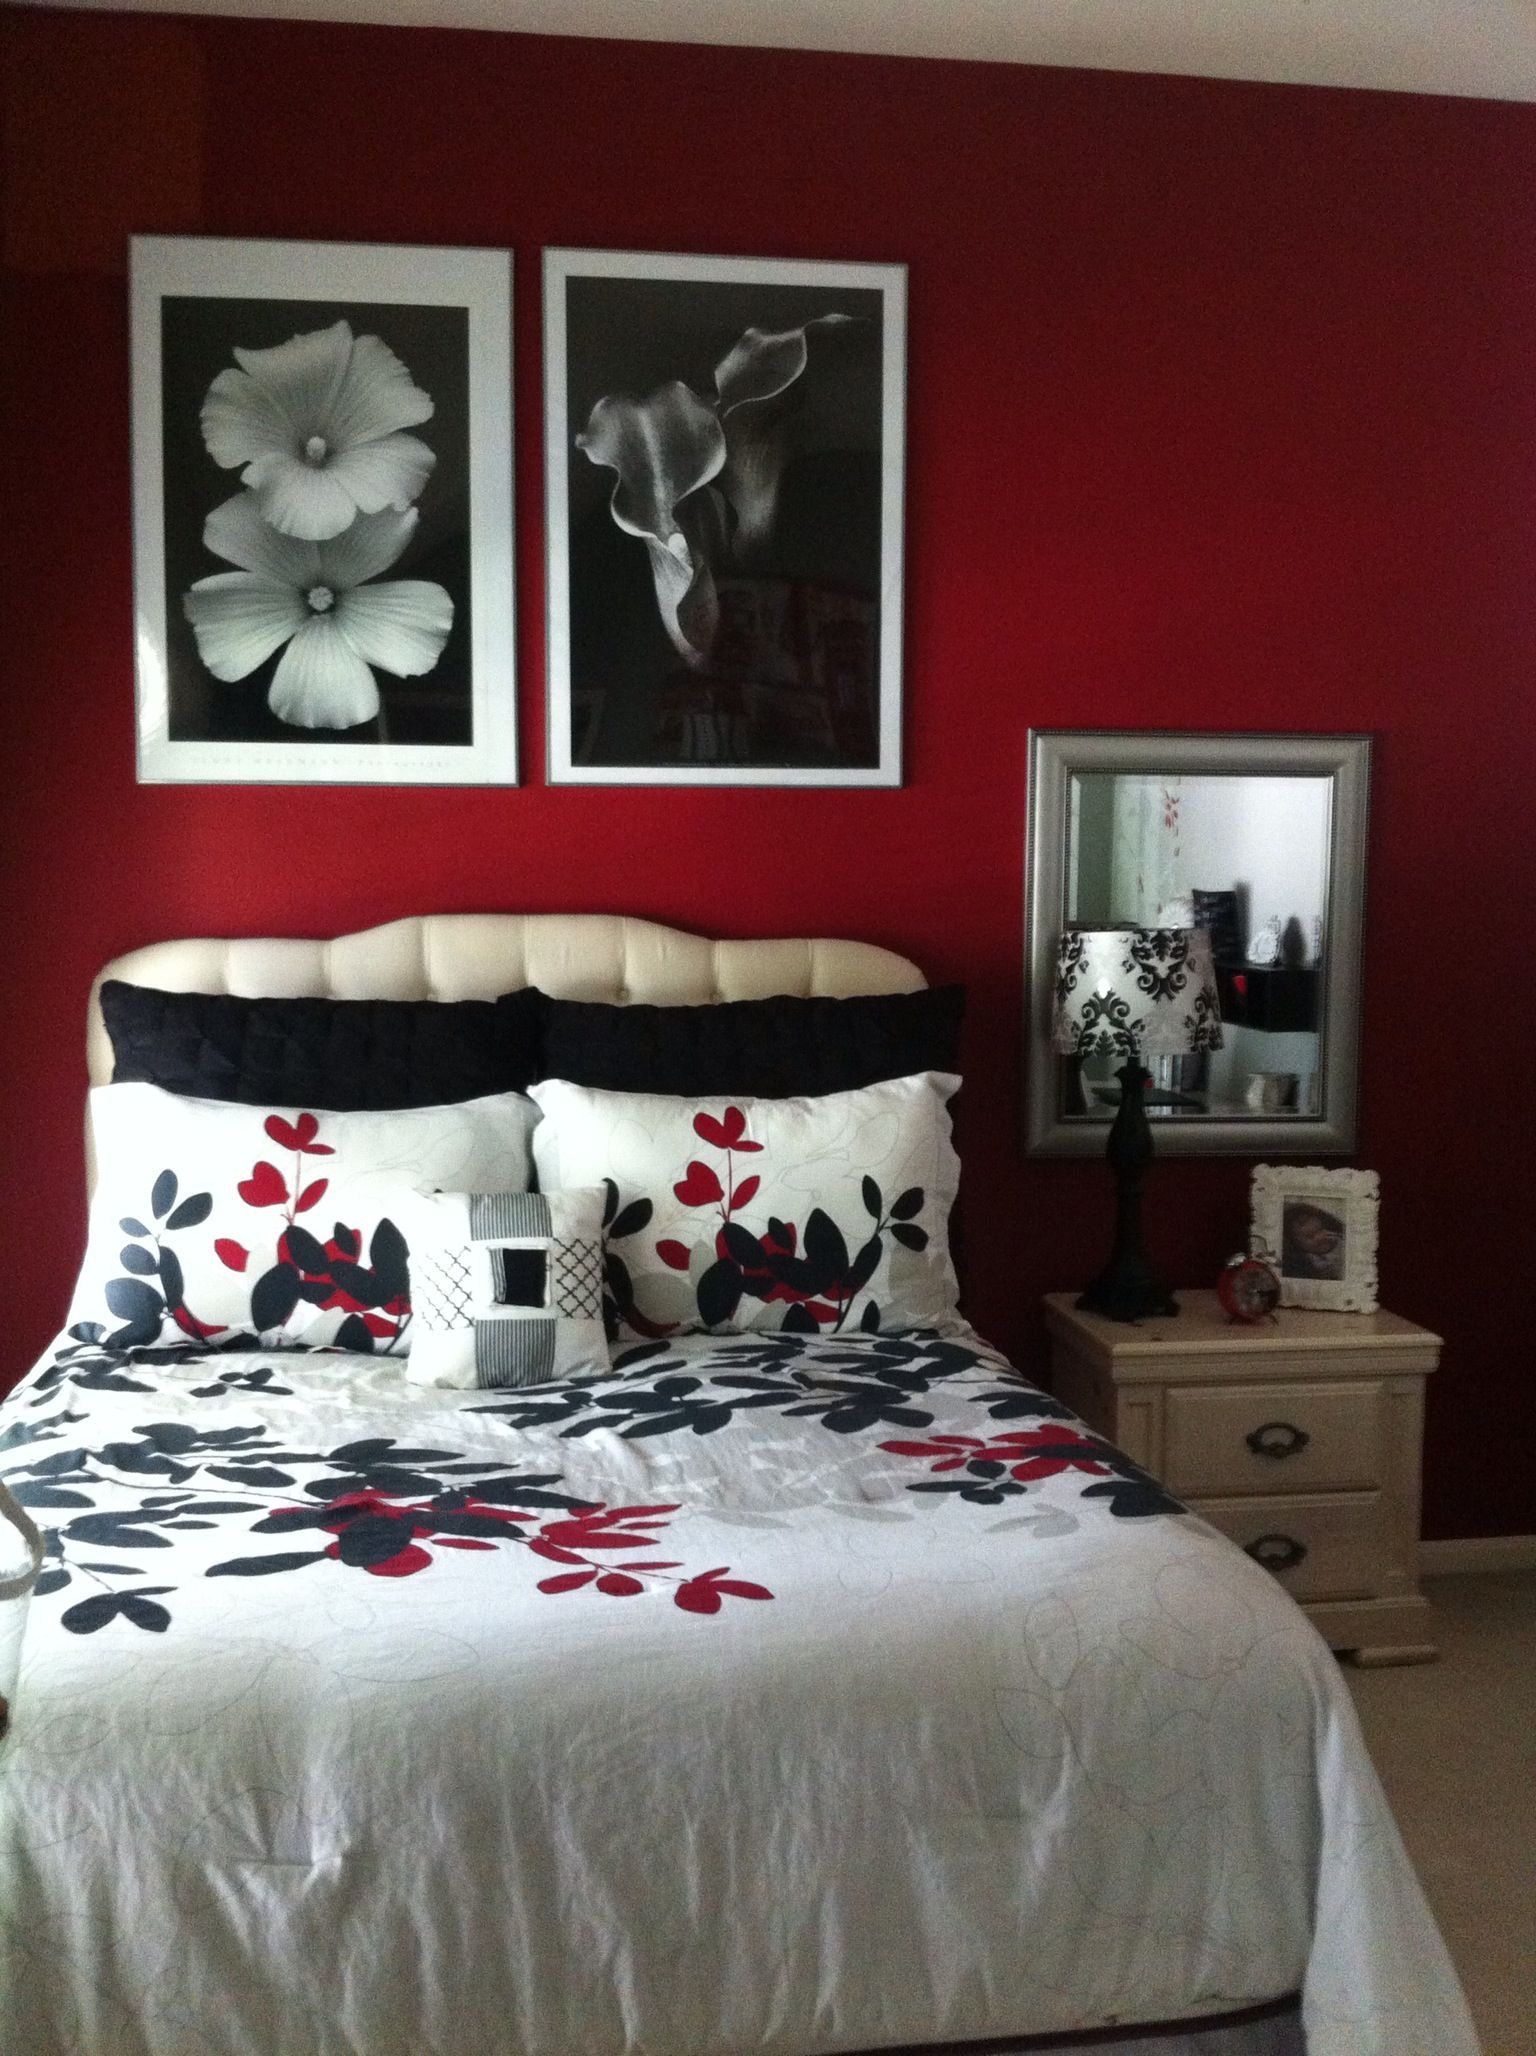 Red Black And White Bedroom Ideas Red Bedroom Decor Black Bedroom Decor Bedroom Red